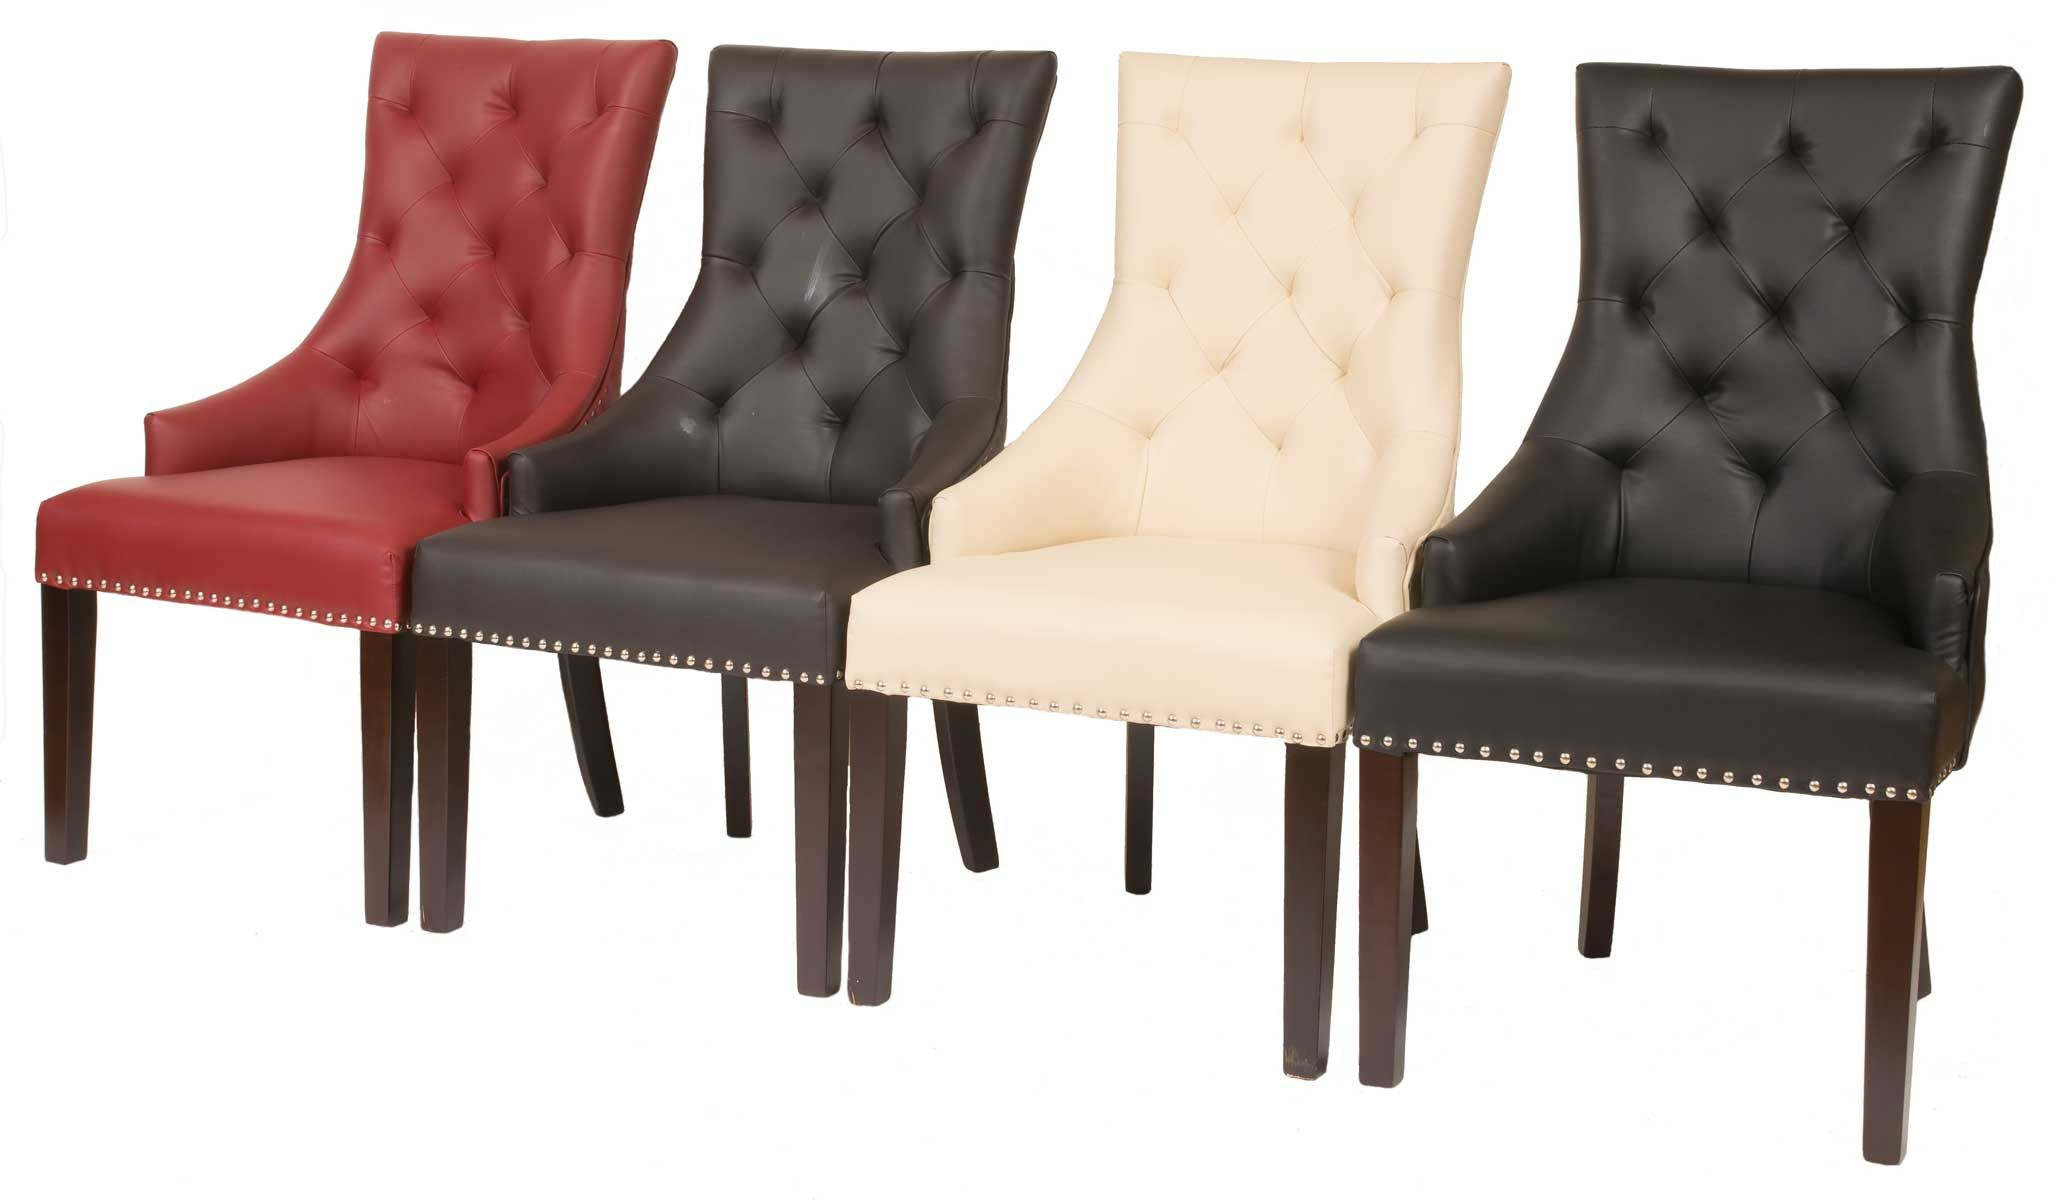 fontwell smart leather dining chair buttoned back smart leather restaurant chairs direct from the contract furniture importer smart interiors